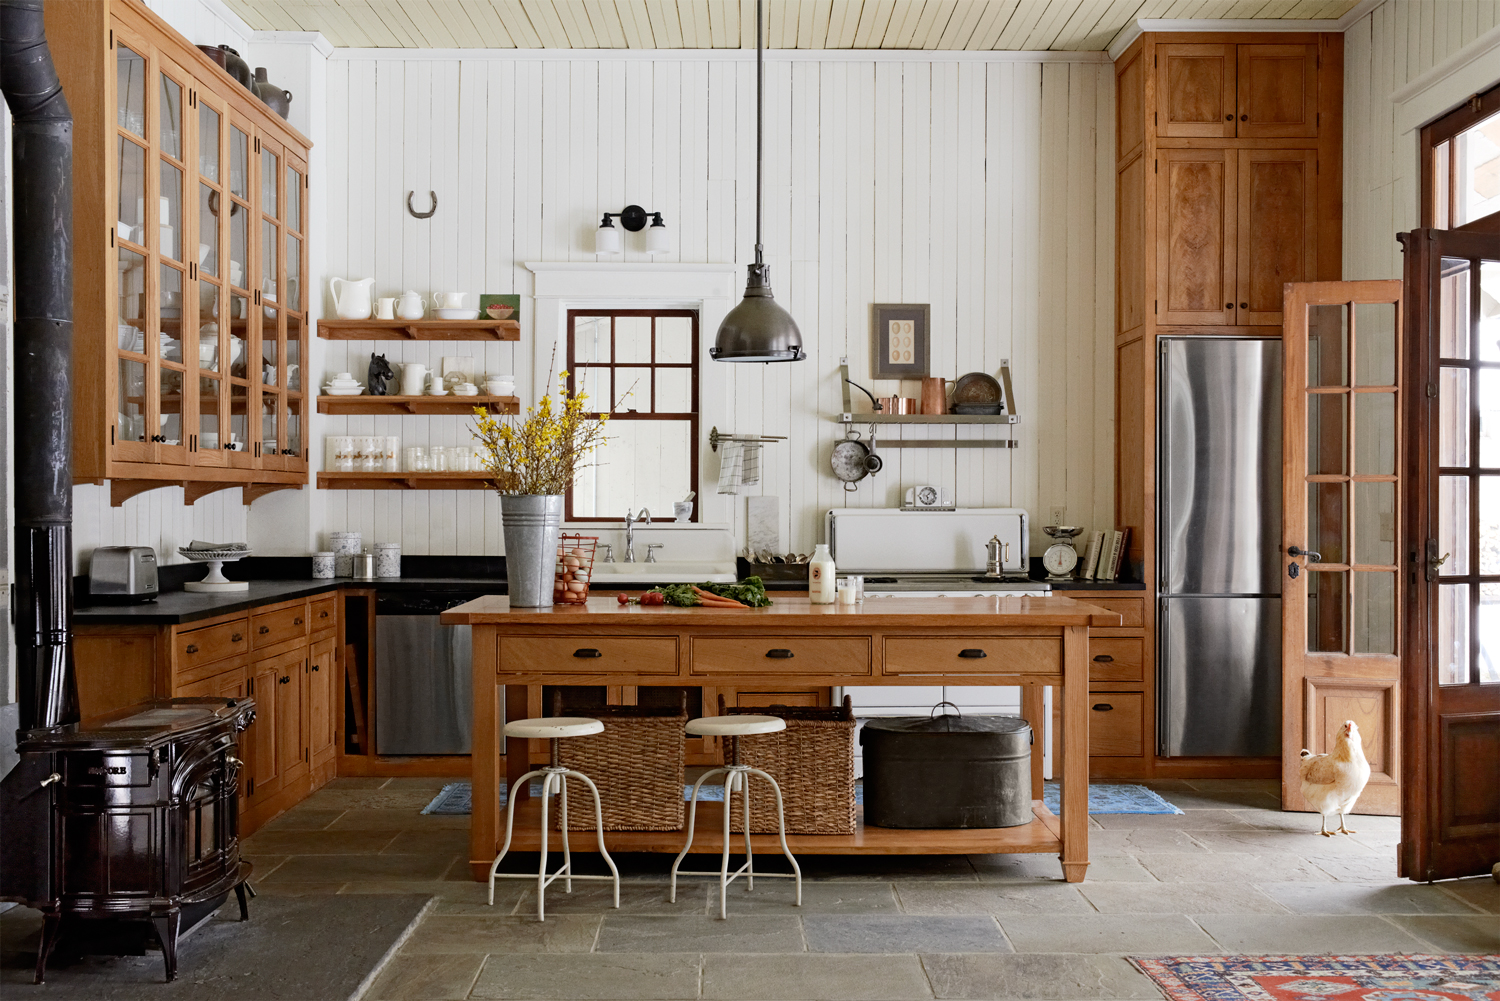 decorating kitchens microwave kitchen cabinet design ideas country style swing